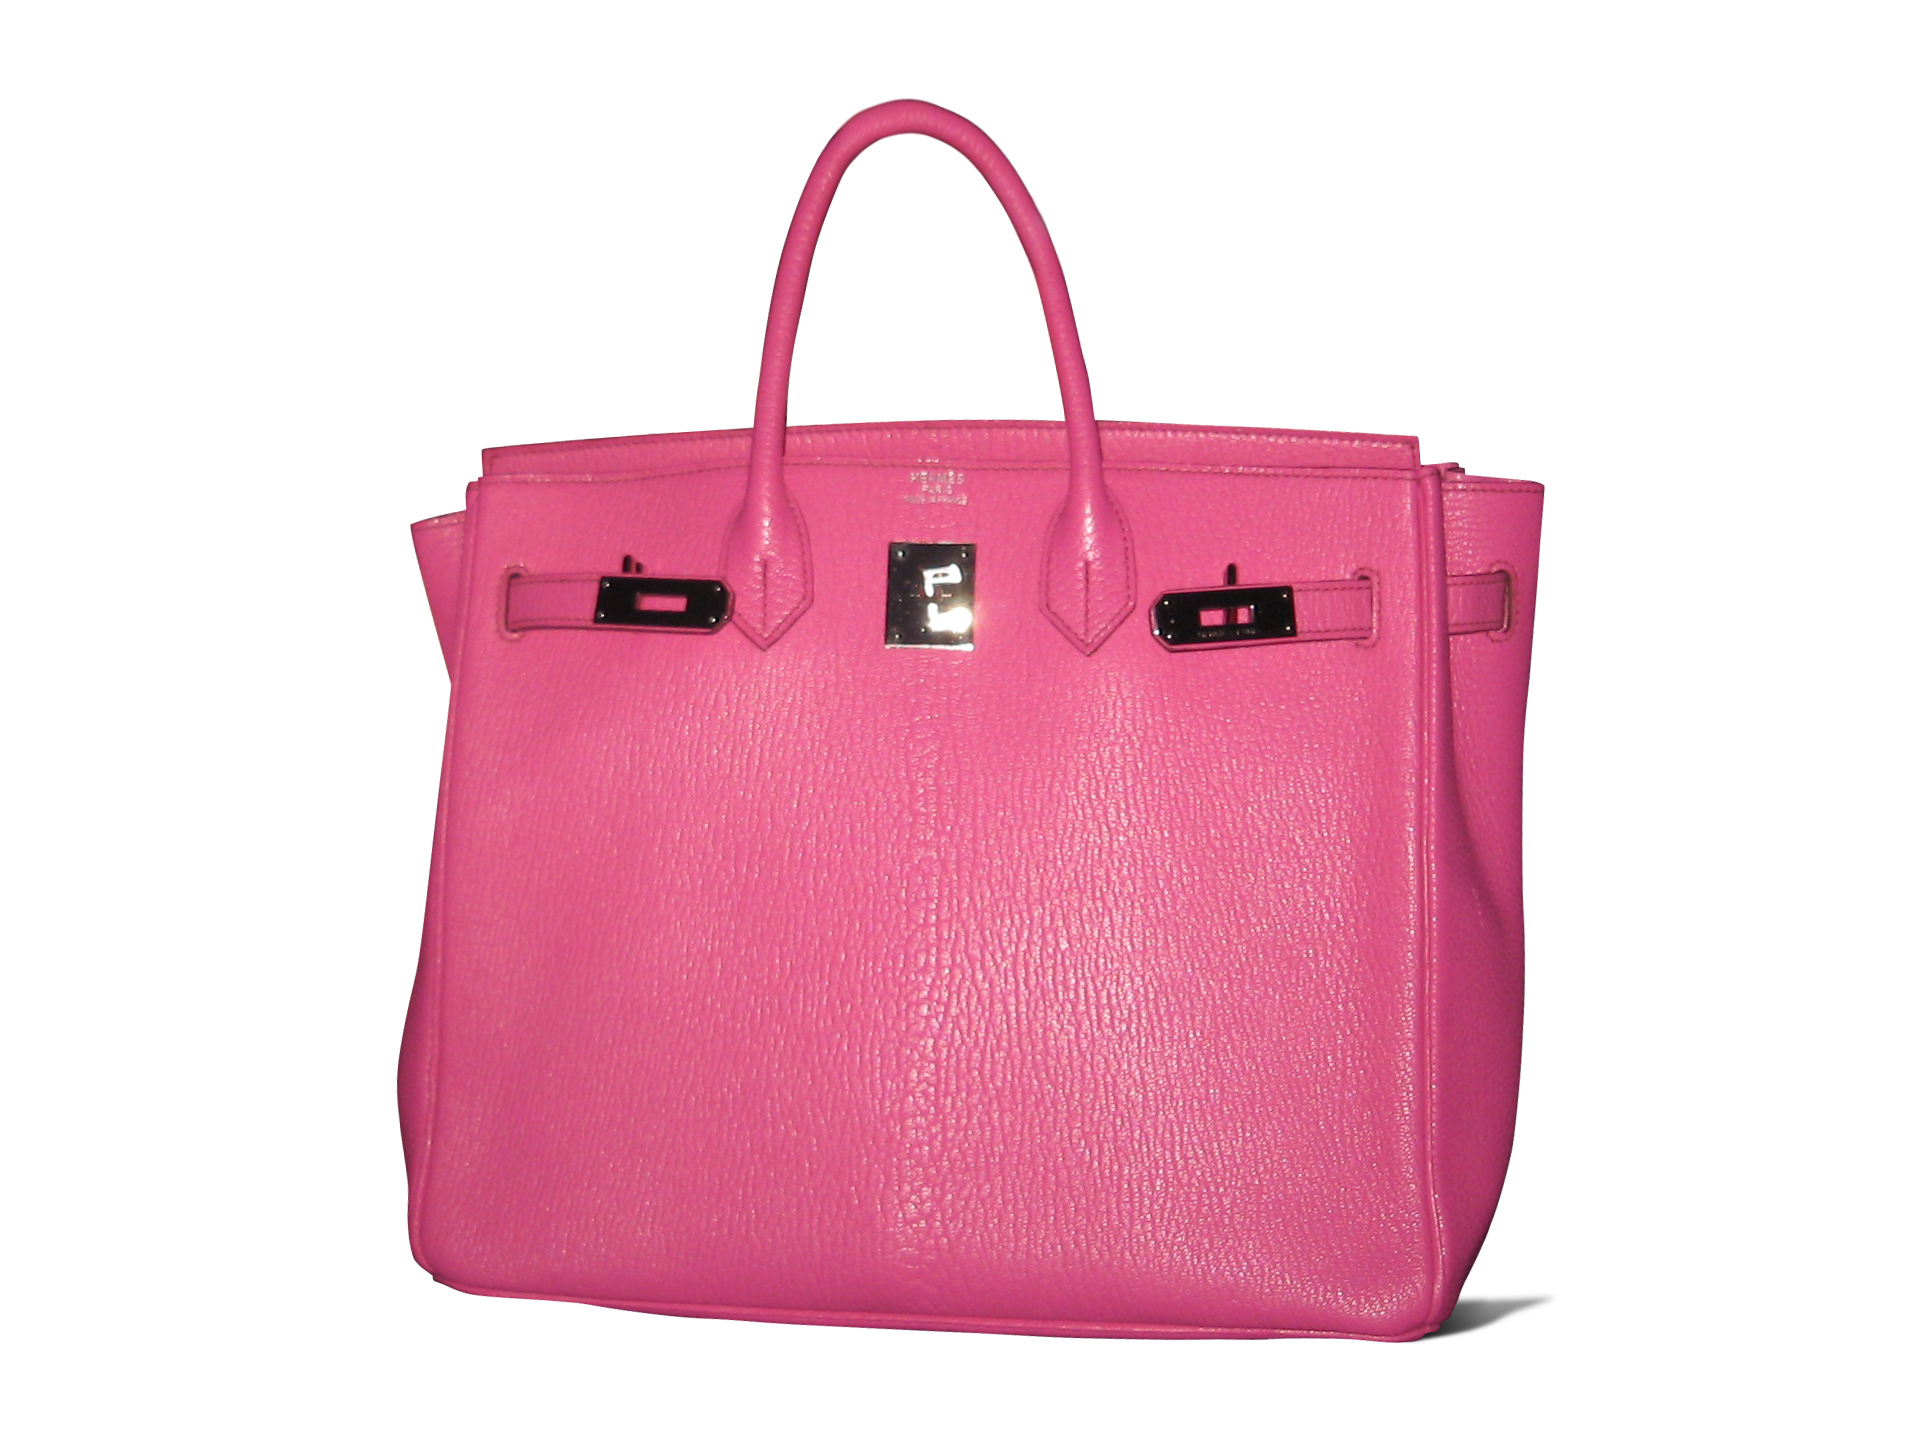 Hermes Birkin purse. This file is licensed under the Creative Commons Attribution 2.0 Generic license.